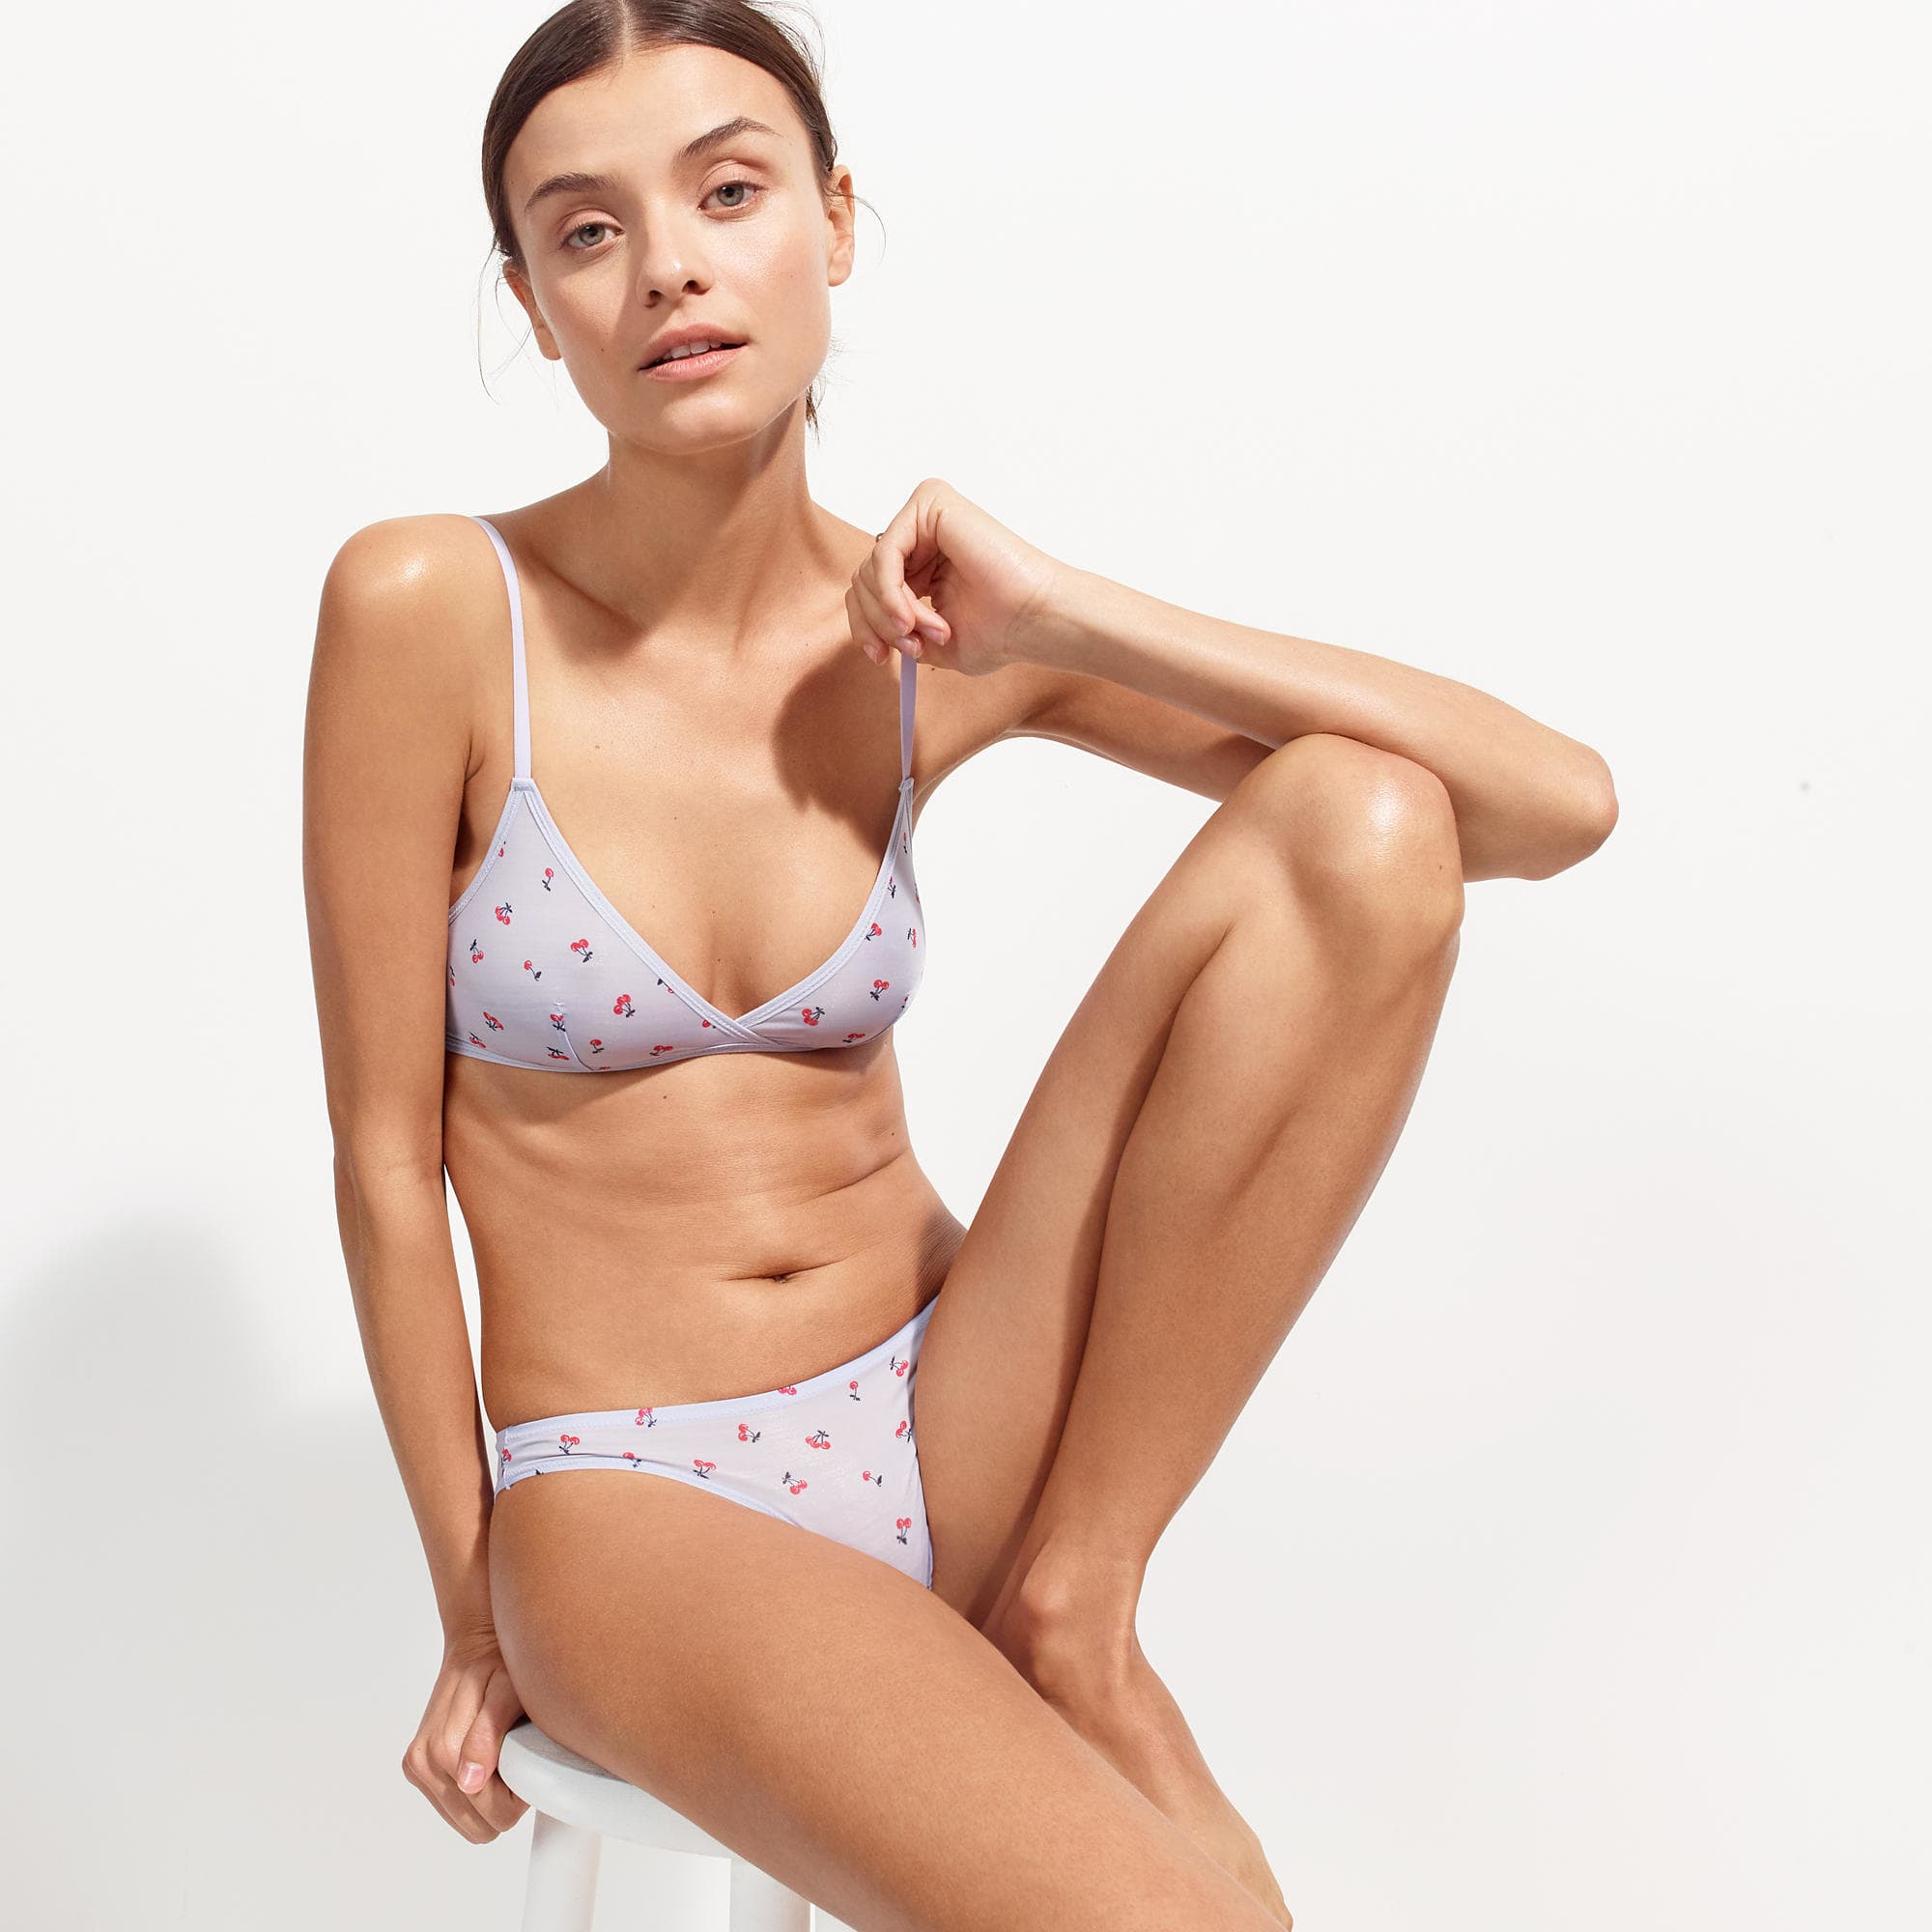 J.Crew Just Launched Its First-Ever Intimates Collection and You're Going to Want Everything